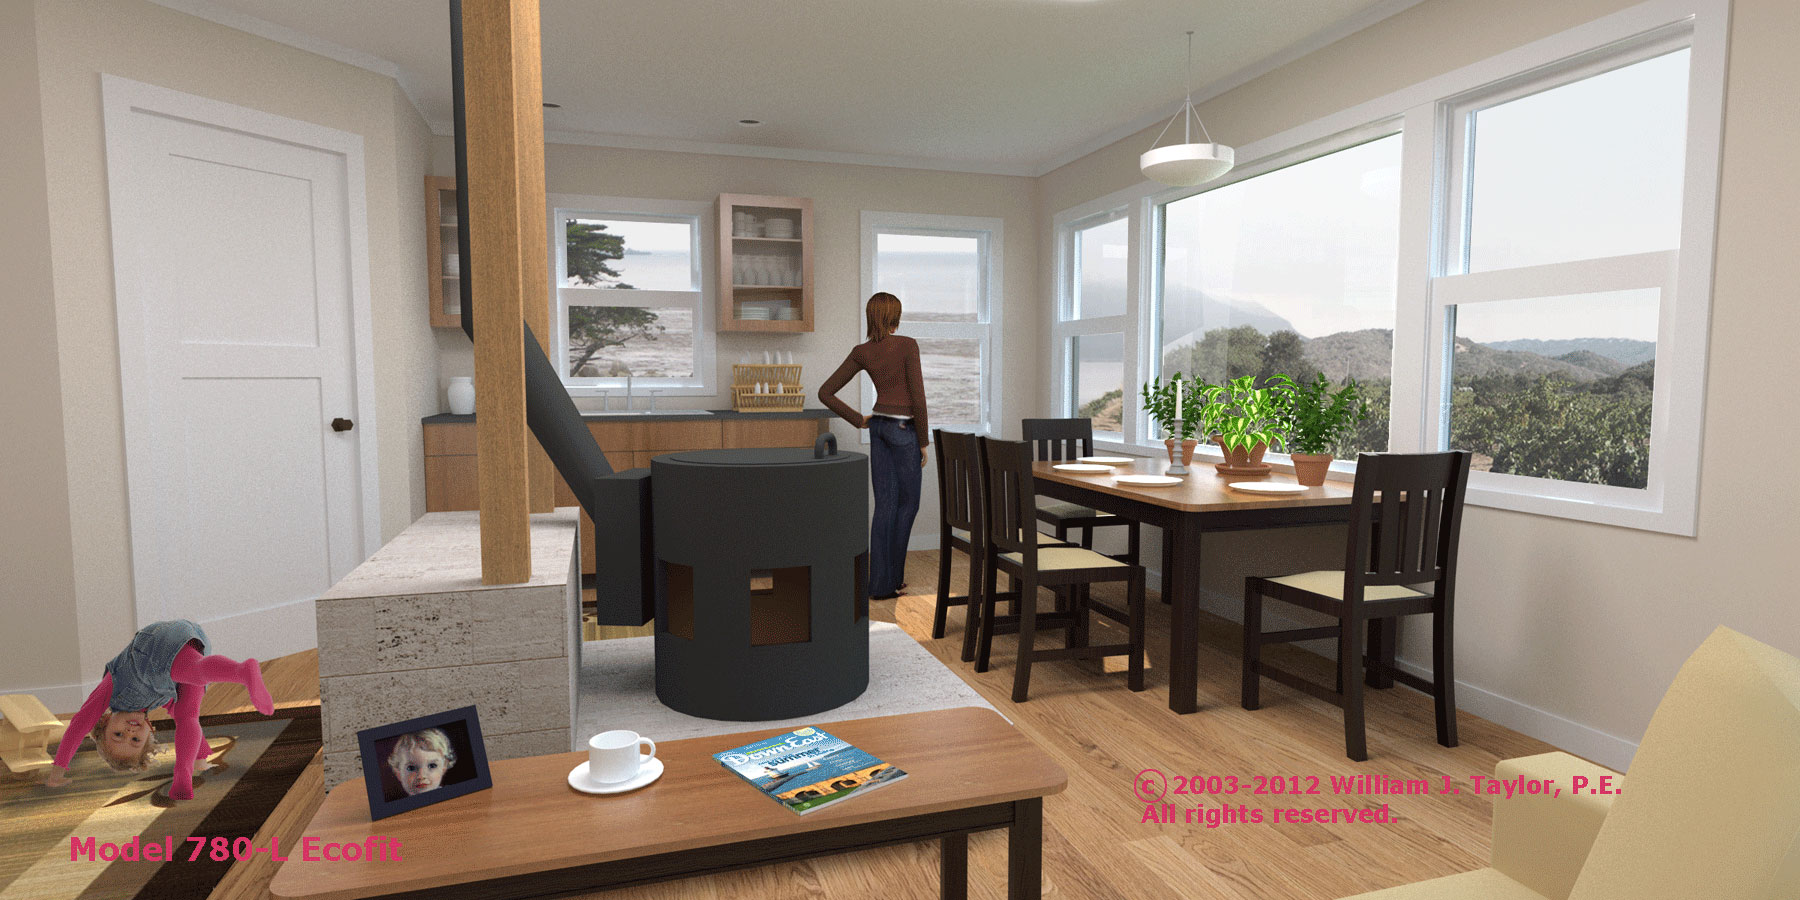 Solar House Plans And Prefabricated Home Kits Are Available Kezarhomes Ecofit Interior Natural Light